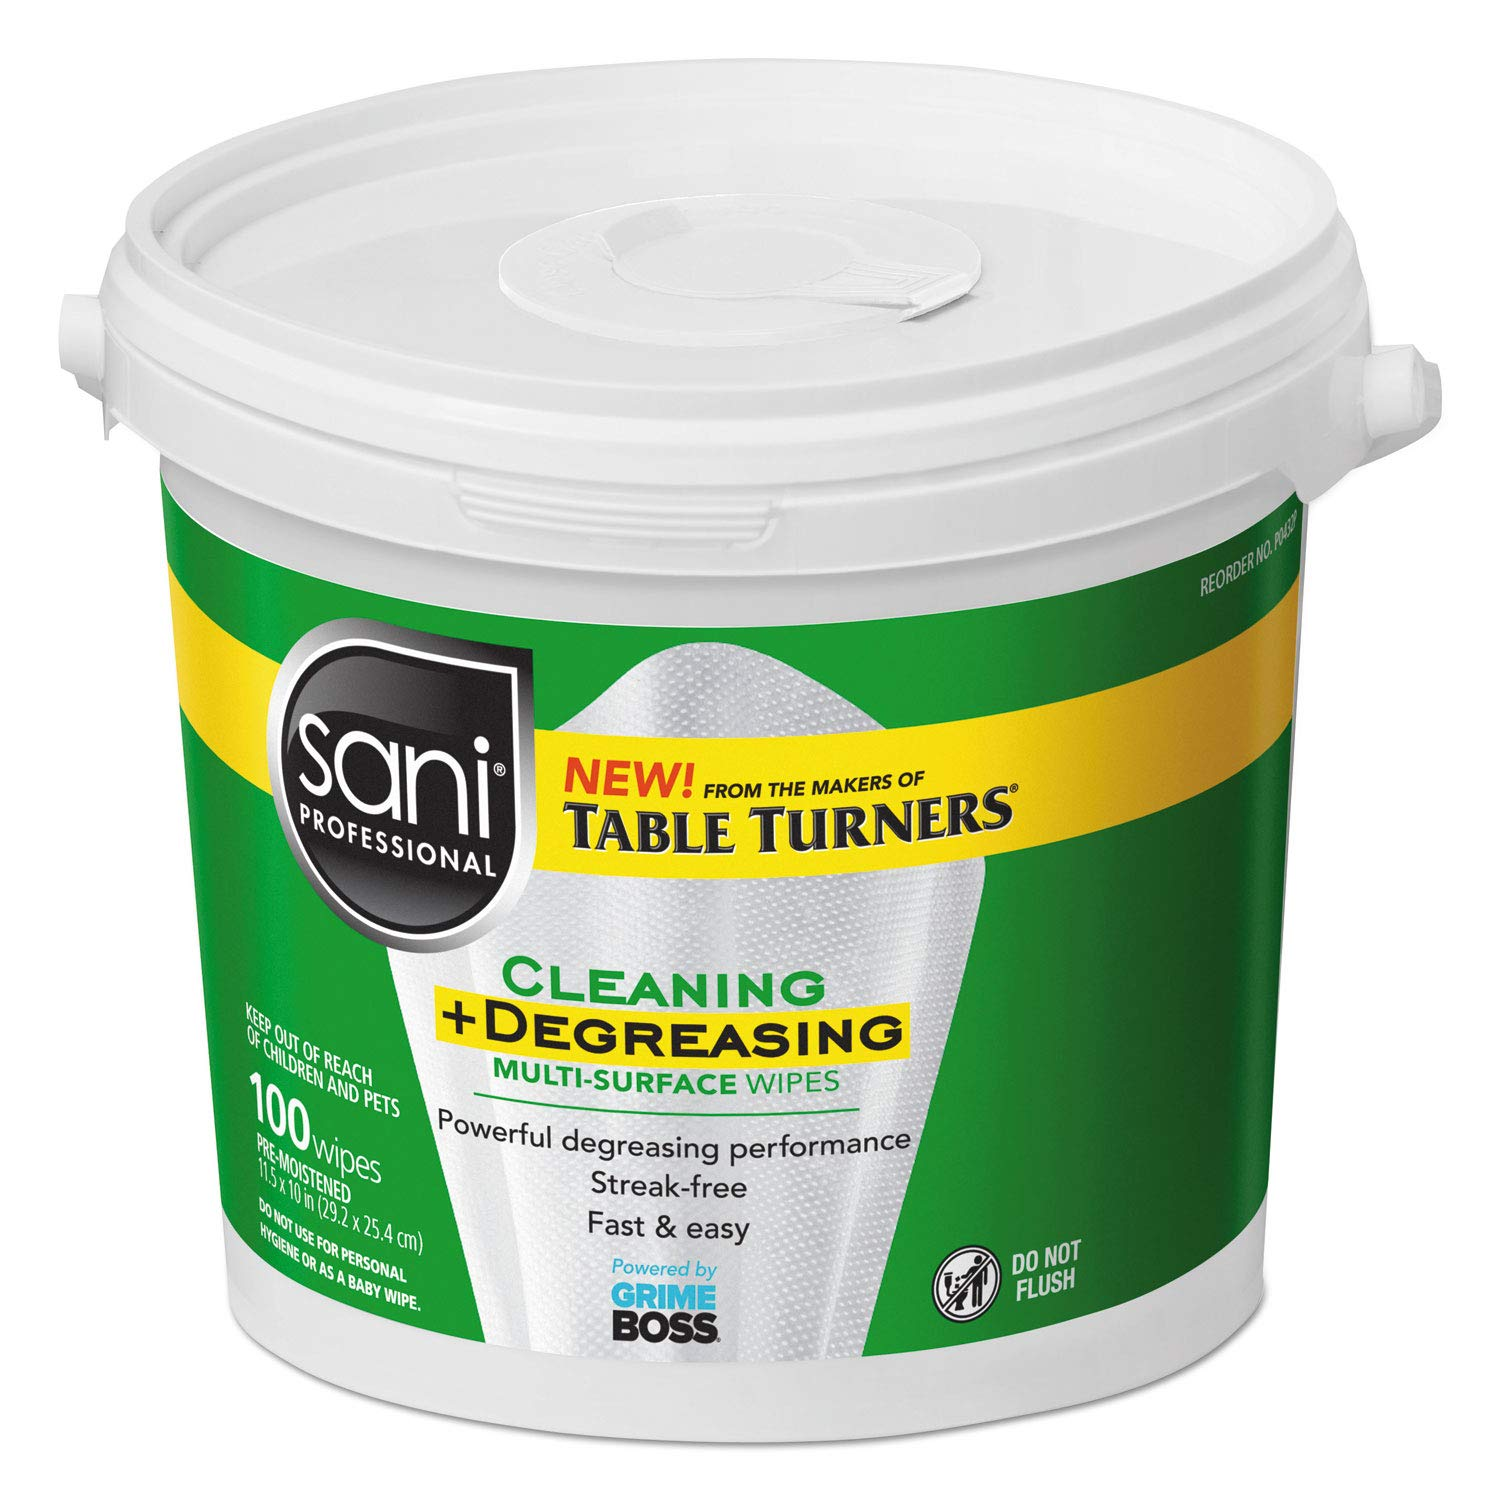 Cleaning + Degreasing Multi-Surface Wipes 2 Pail - 100 Ct Each